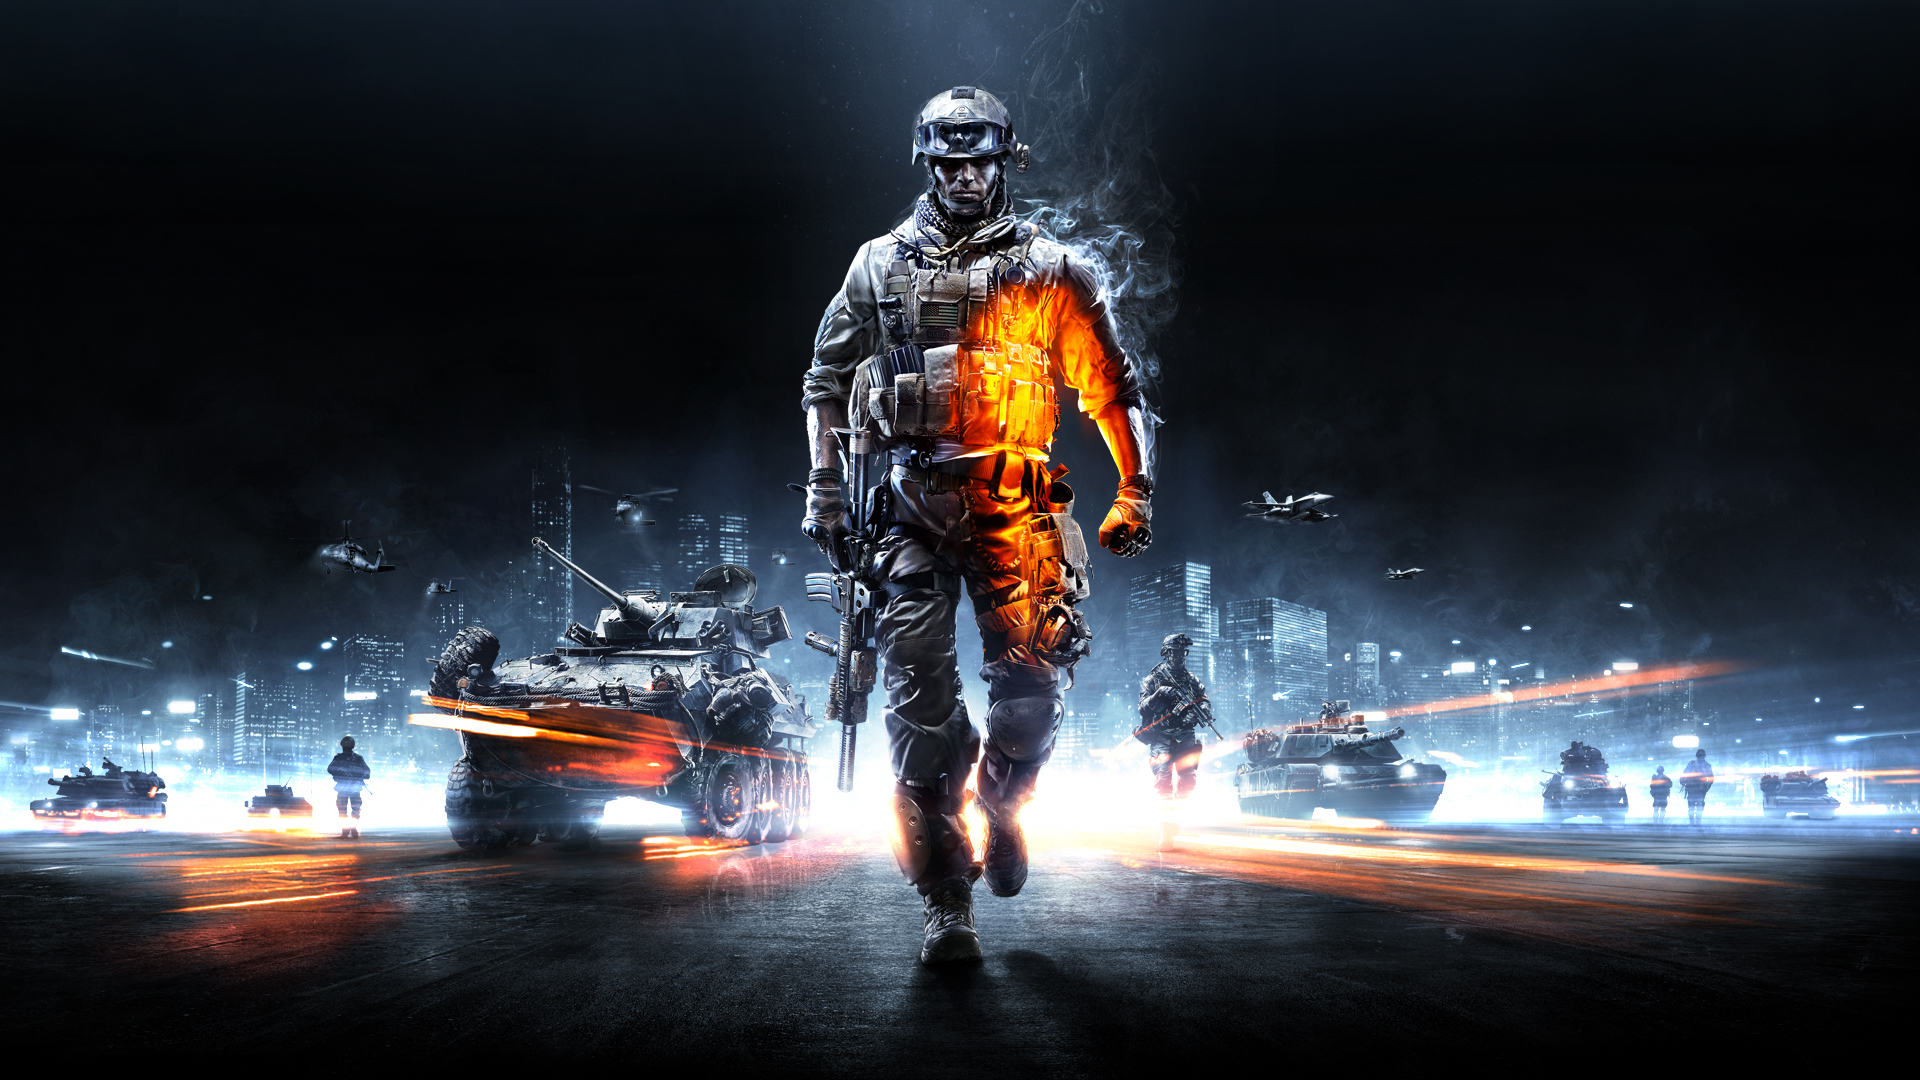 Battlefield 3 Walli 16x9 Clean